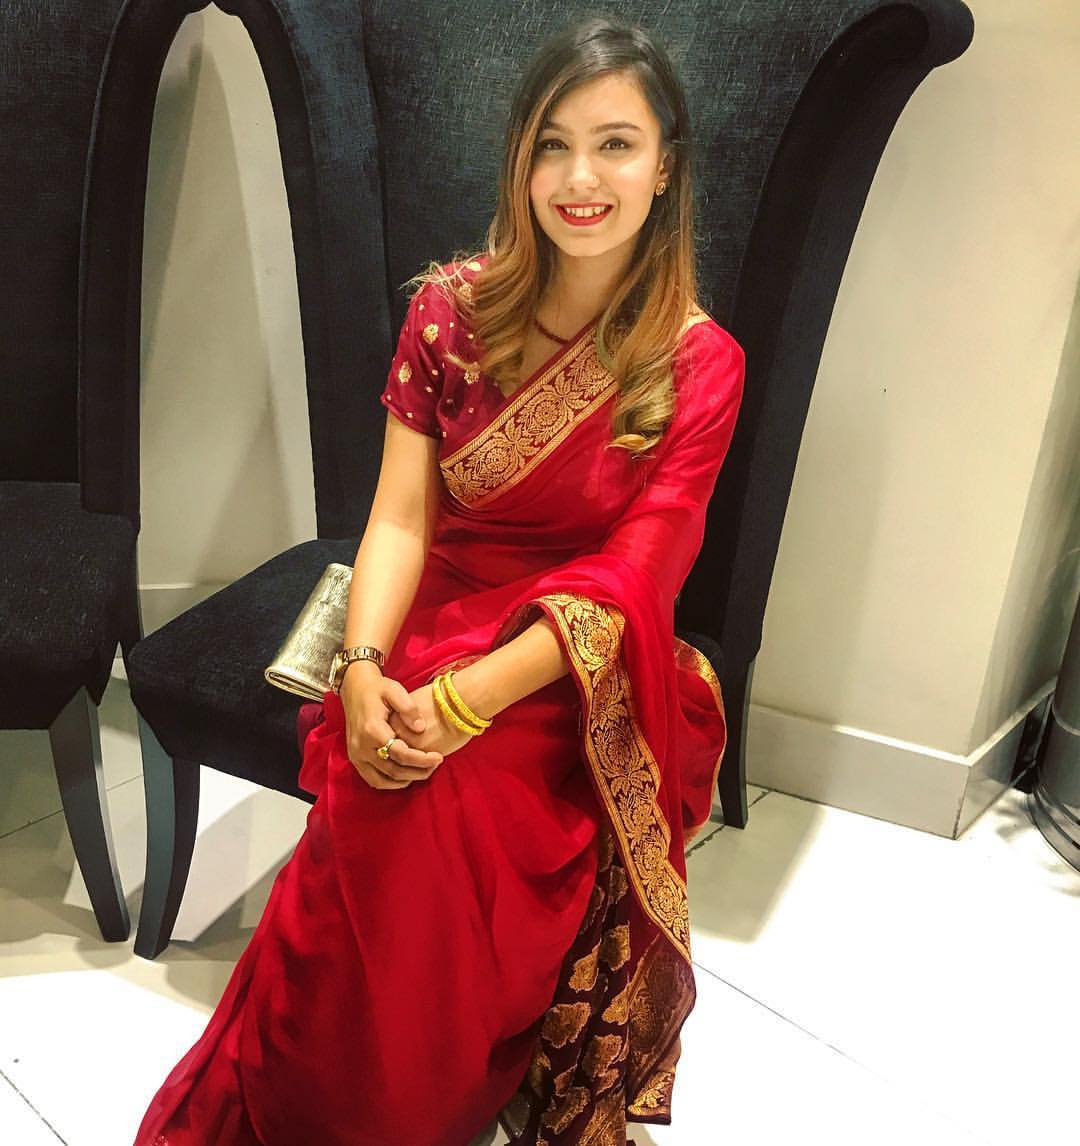 Images of girls in saree